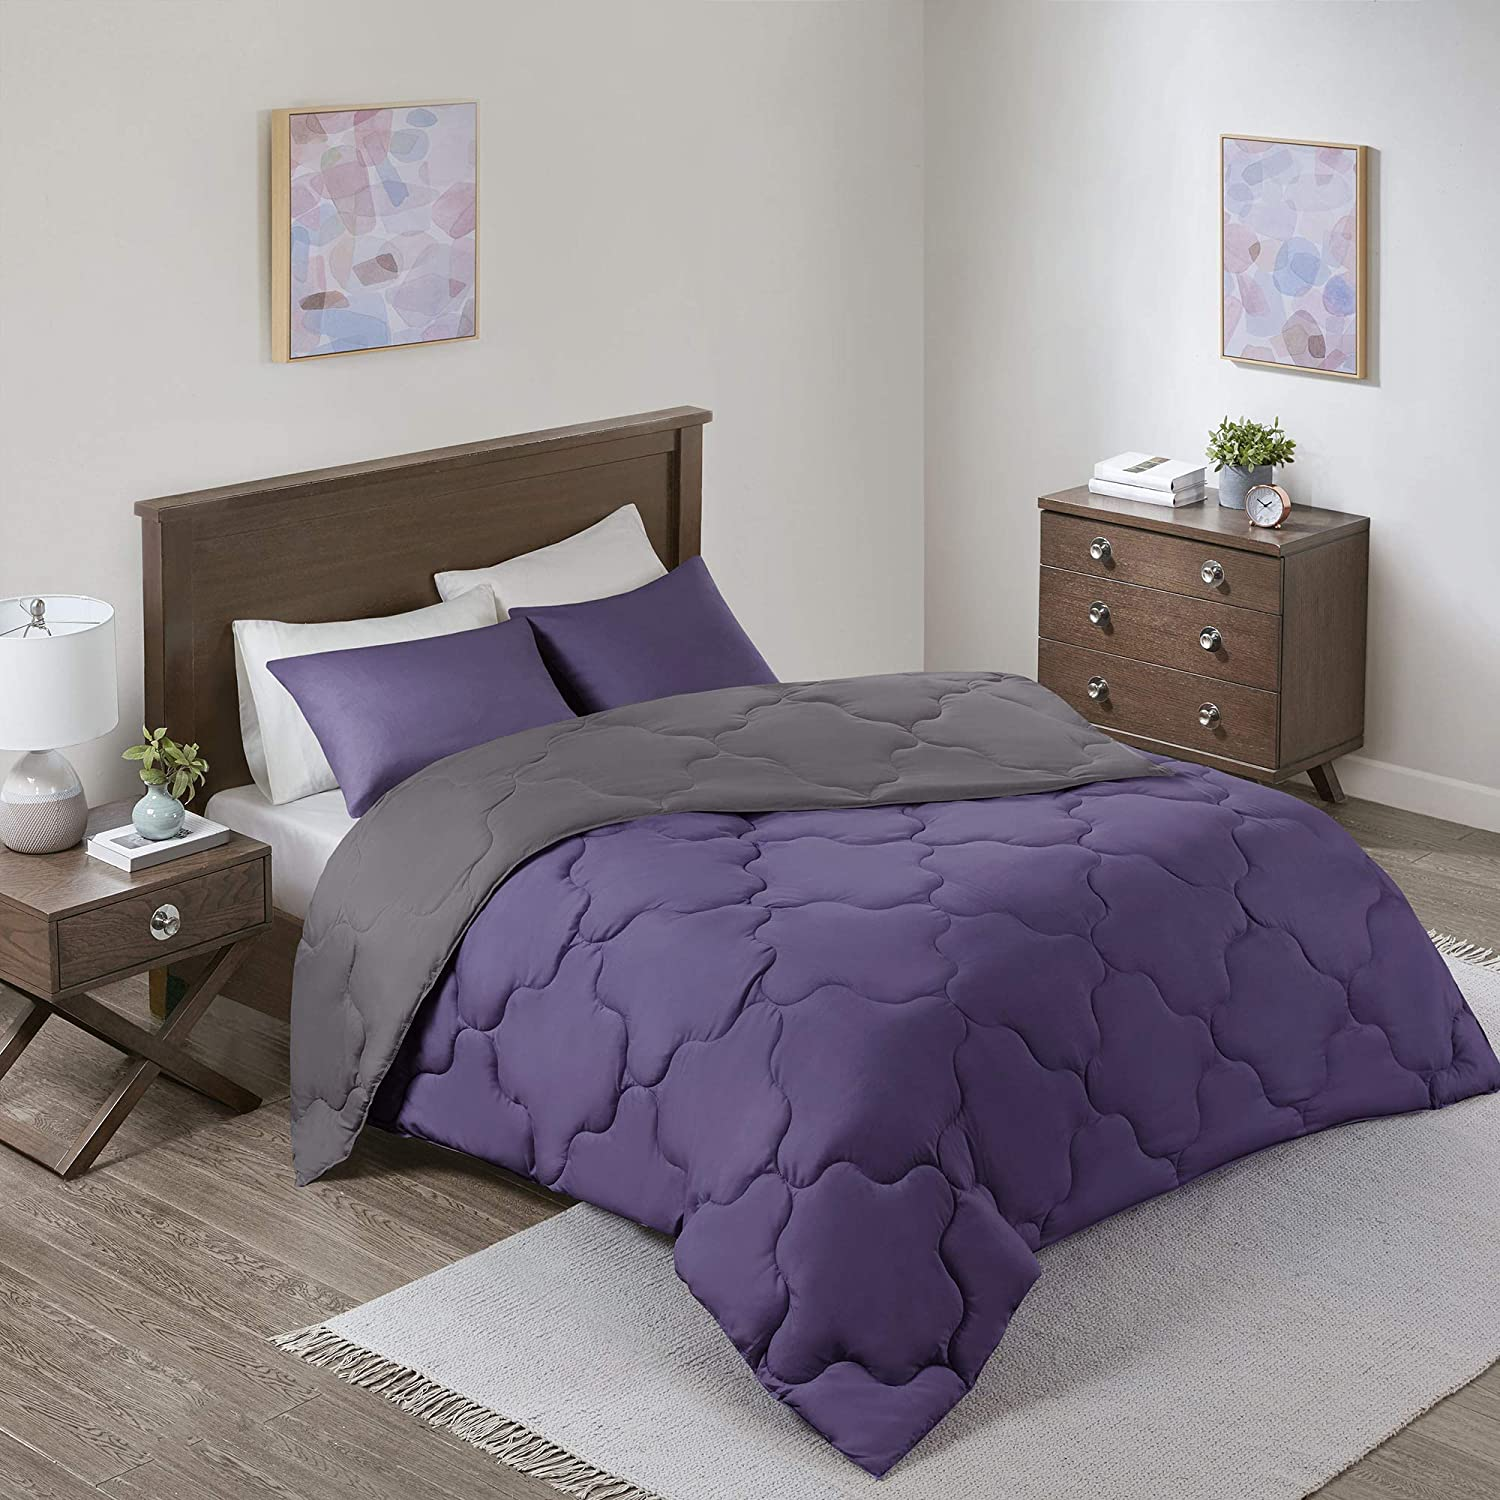 "Comfort Spaces Vixie Comforter Set-Modern Geometric Quaterfoil Cloud Quilted Design All Season Down Alternative Bedding, Matching Shams, Full/Queen(90""x90""), Microfiler Reversible Purple/Charcoal"